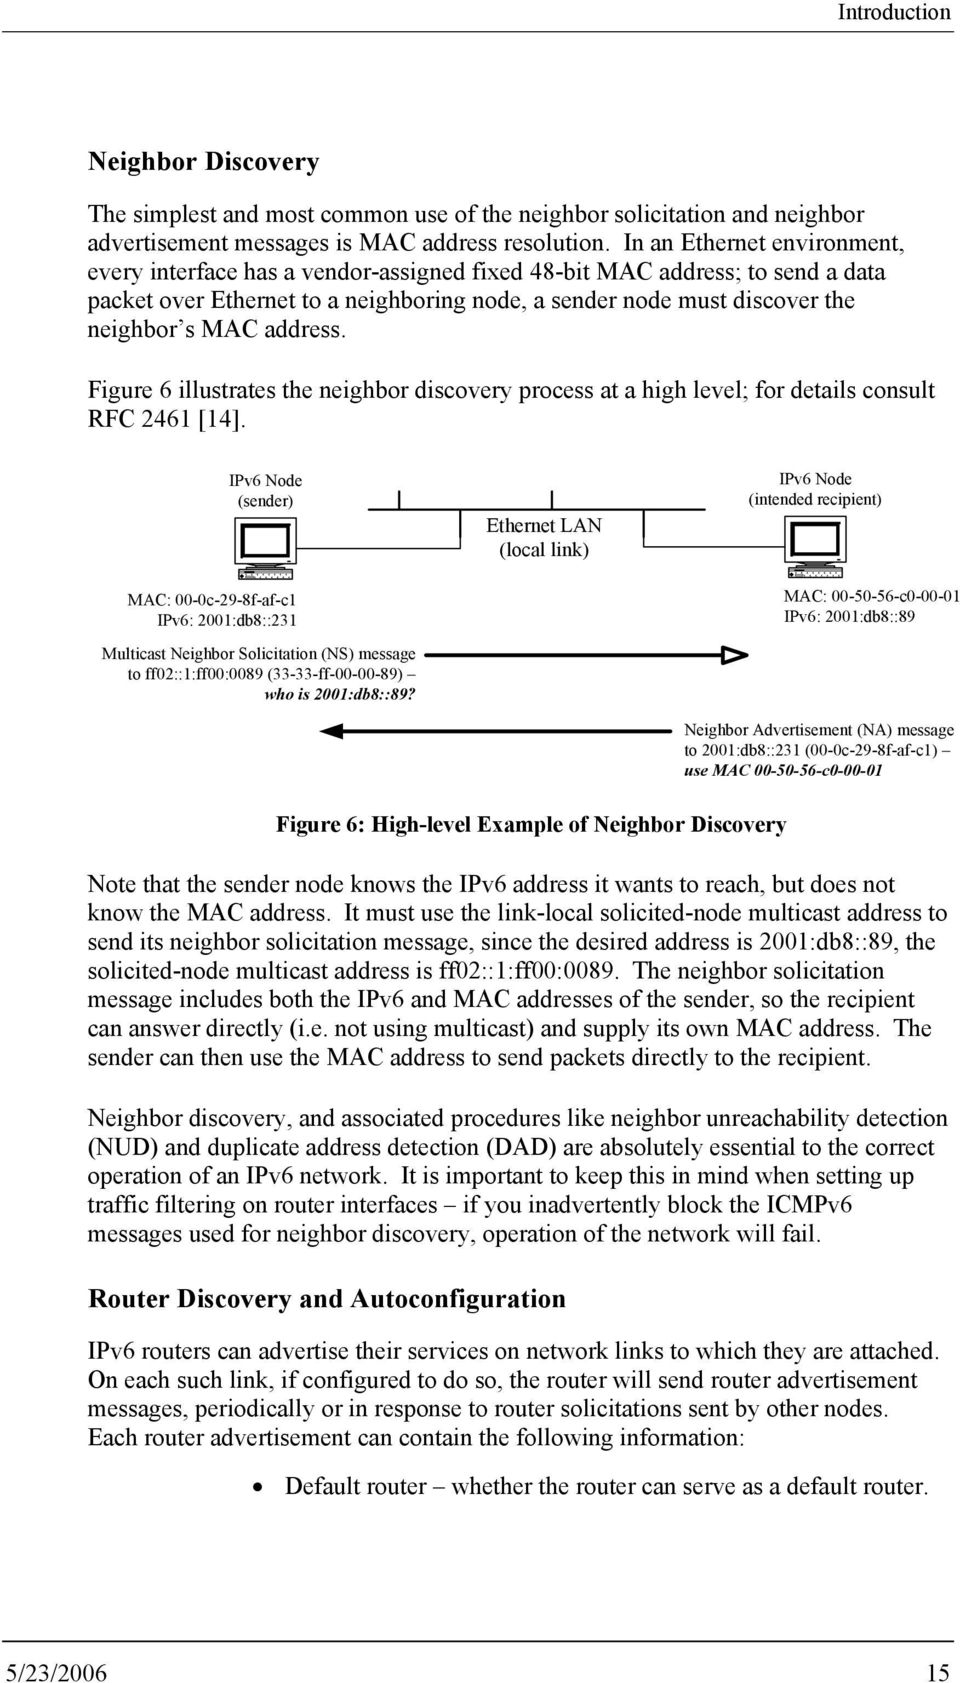 discovery process at a high level; for details consult RFC 2461 [14] IPv6 Node (sender) MAC: 00-0c-29-8f-af-c1 IPv6: 2001:db8::231 Multicast Neighbor Solicitation (NS) message to ff02::1:ff00:0089